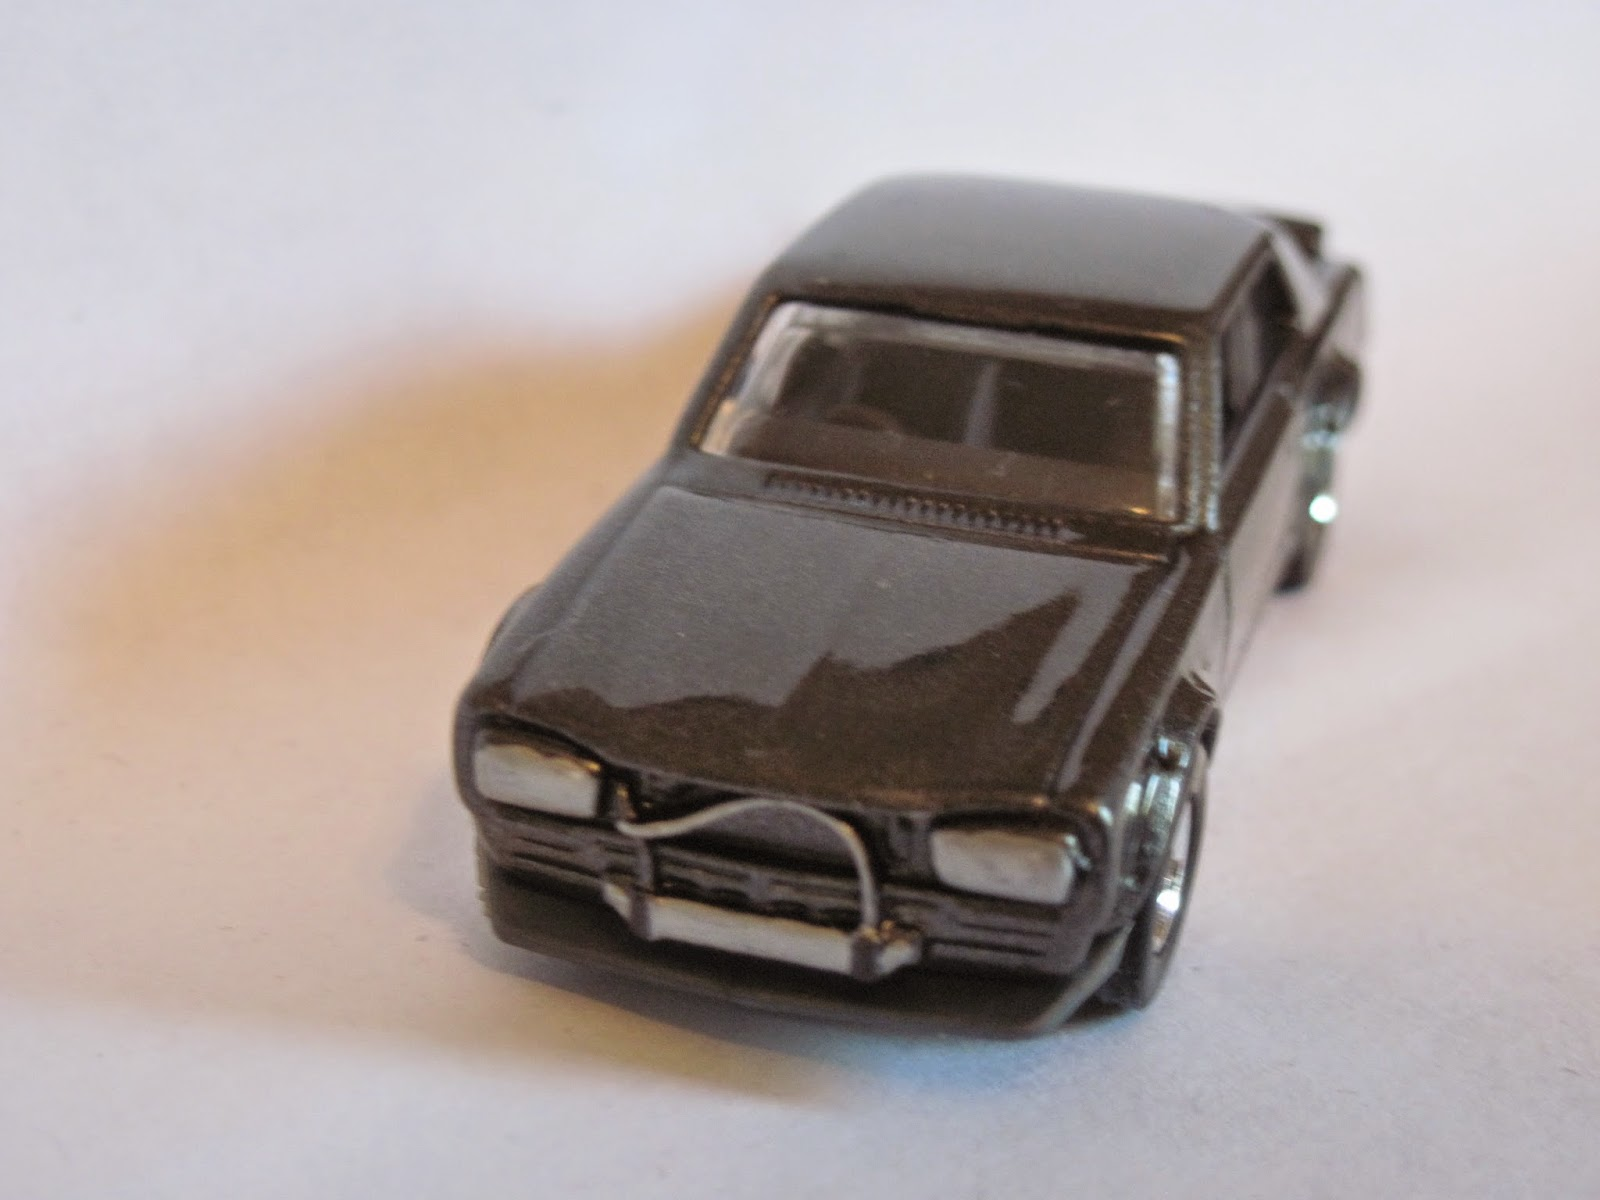 Las Diecast Blog Hot Wheels Nissan Skyline H T 2000gt X Custom Decal Datsun Wagon Japan Histori The Hard To Find Boulevard Release Has Never Been Added Collection Here So I Decided Make My Own